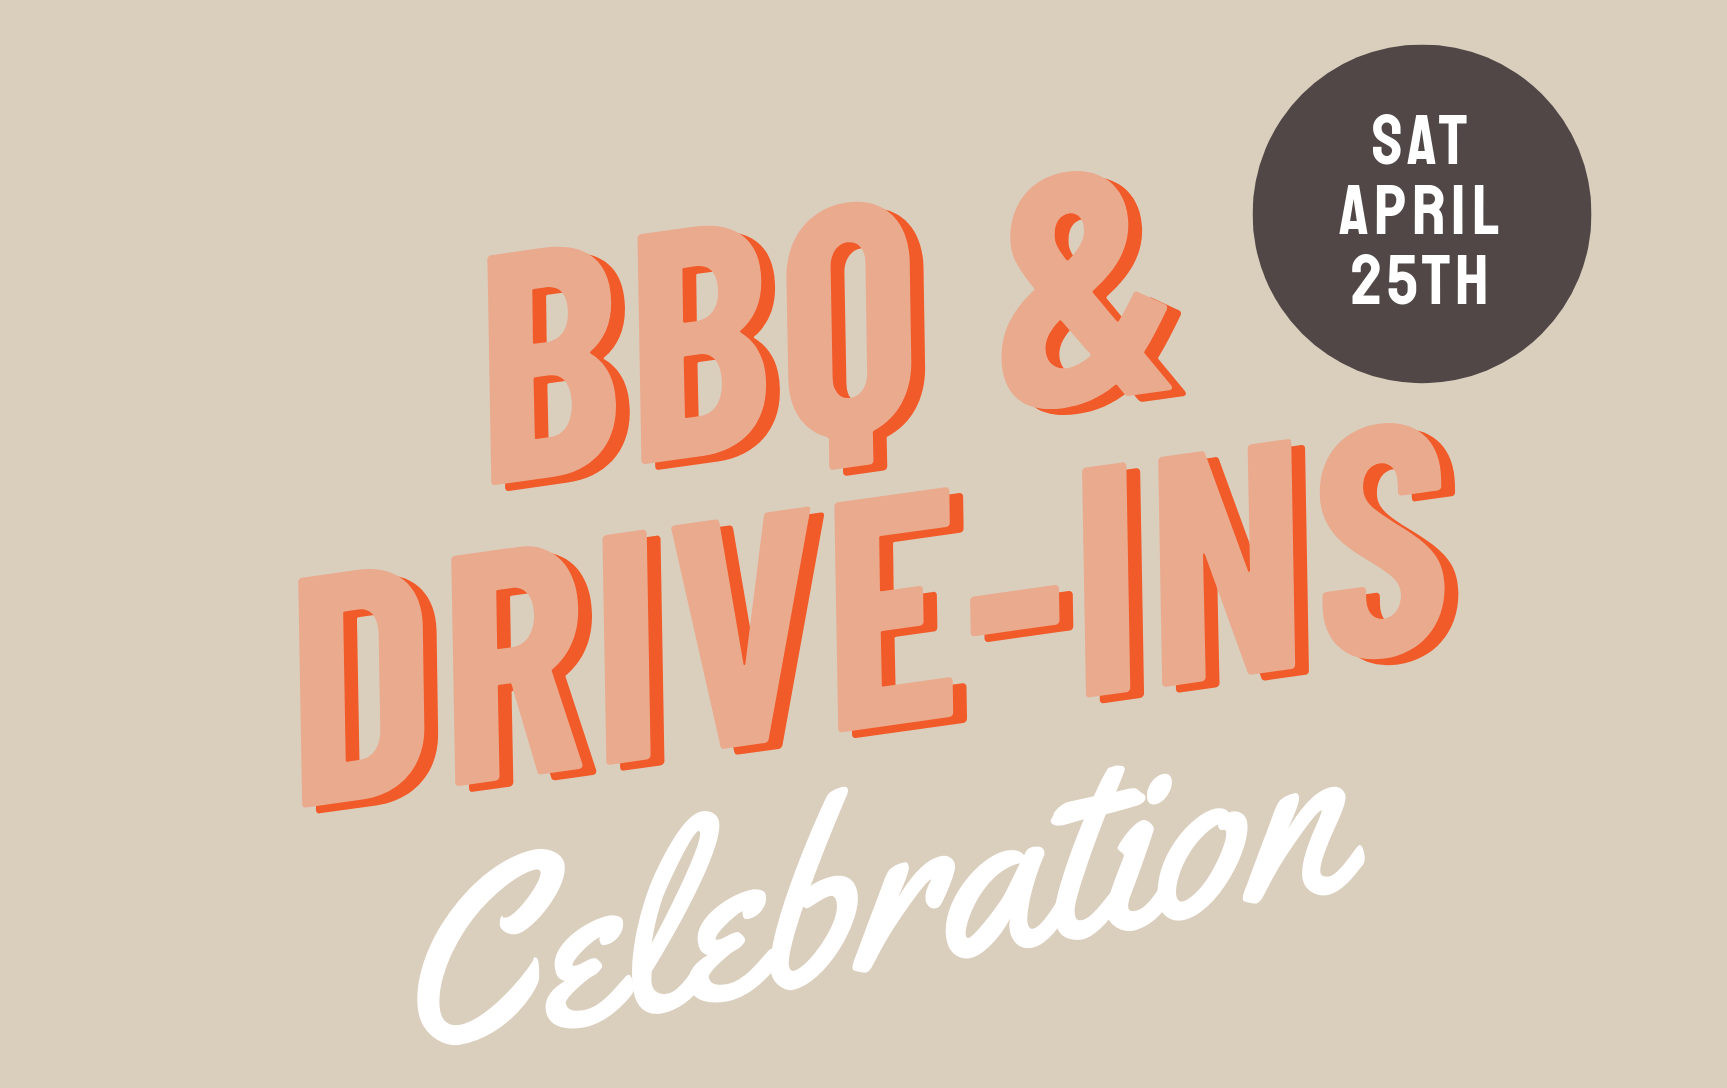 Join Us Live On Facebook April 25th for Nanola's BBQ & Drive-In's Celebration